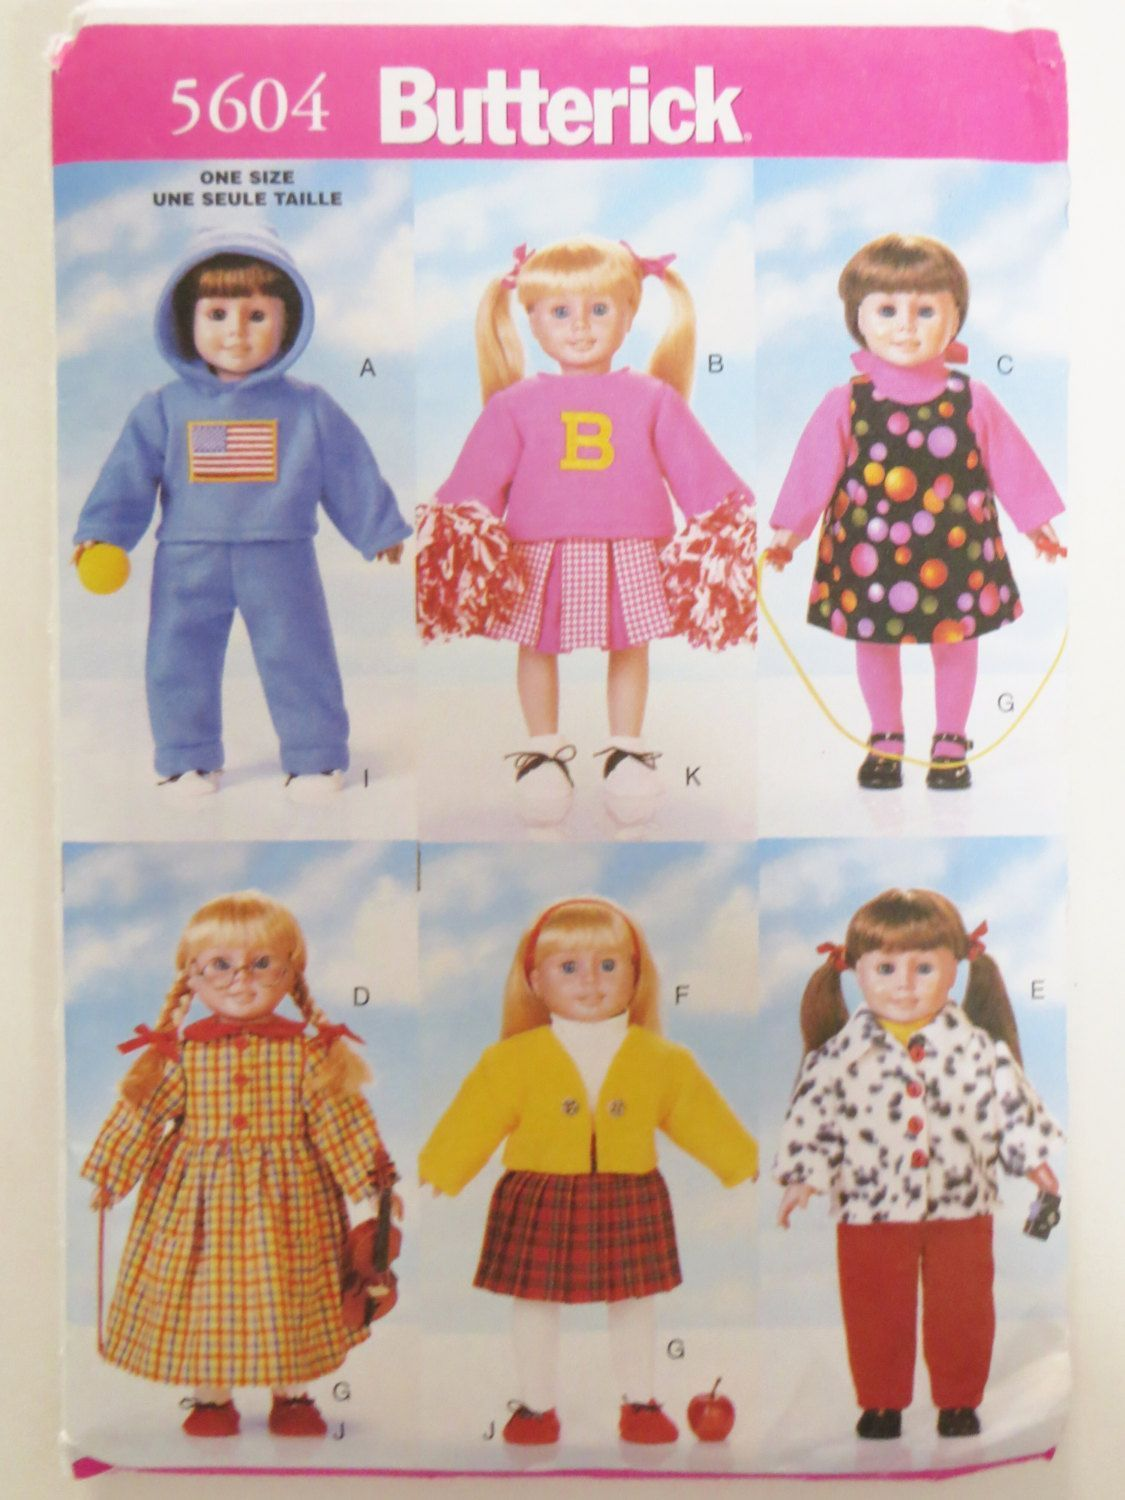 Butterick 5604 Doll Clothes Sewing Pattern, Fits 18 inch Doll, Back to School Wardrobe, Hoodie Cheerleader Jumper Dress Jacket Pants, uncut #18inchcheerleaderclothes Butterick 5604 Doll Clothes Sewing Pattern, Fits 18 inch Doll, Back to School Wardrobe, Hoodie Cheerleader Jumper Dress Jacket Pants, uncut by CatBazaar on Etsy #18inchcheerleaderclothes Butterick 5604 Doll Clothes Sewing Pattern, Fits 18 inch Doll, Back to School Wardrobe, Hoodie Cheerleader Jumper Dress Jacket Pants, uncut #18inch #18inchcheerleaderclothes